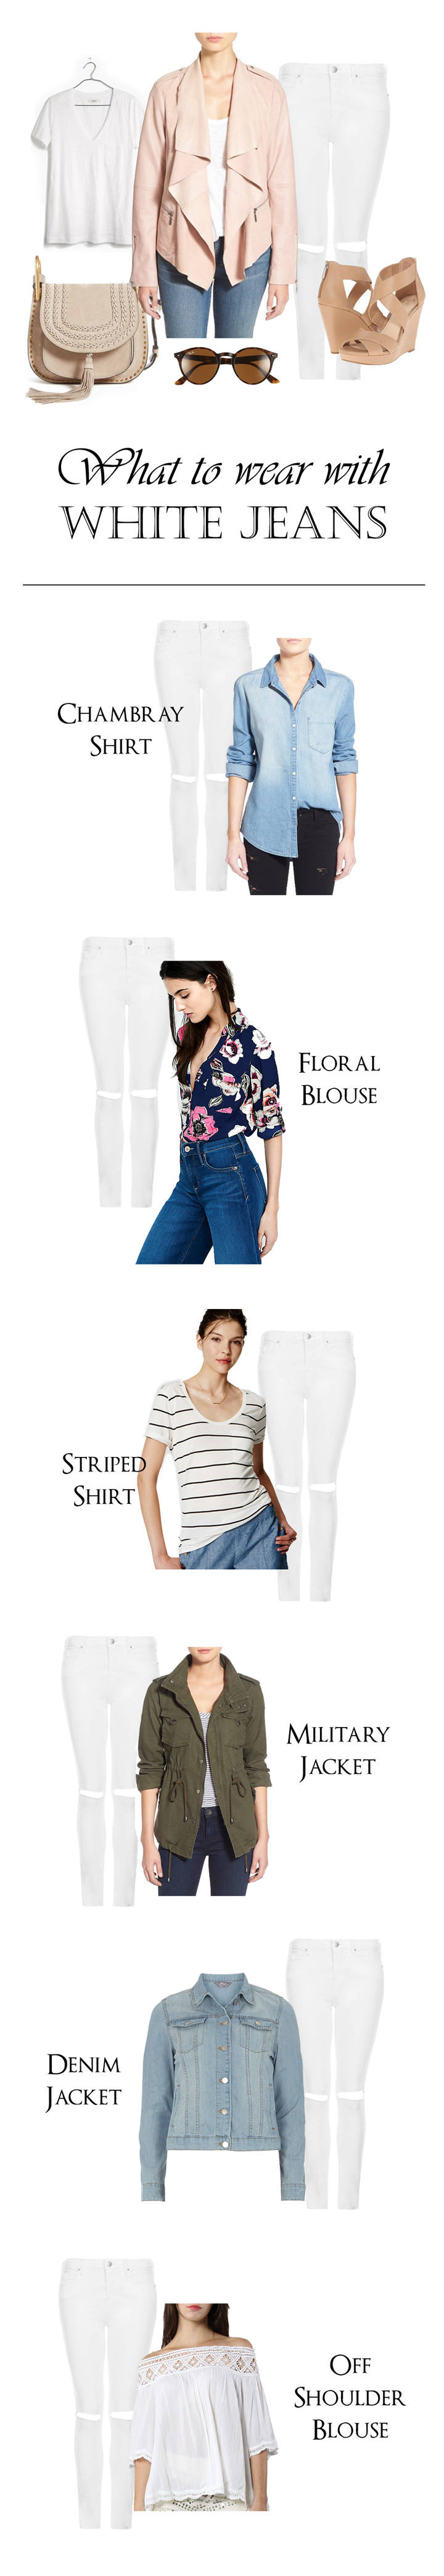 what to wear with white jeans: 7 stylish outfits